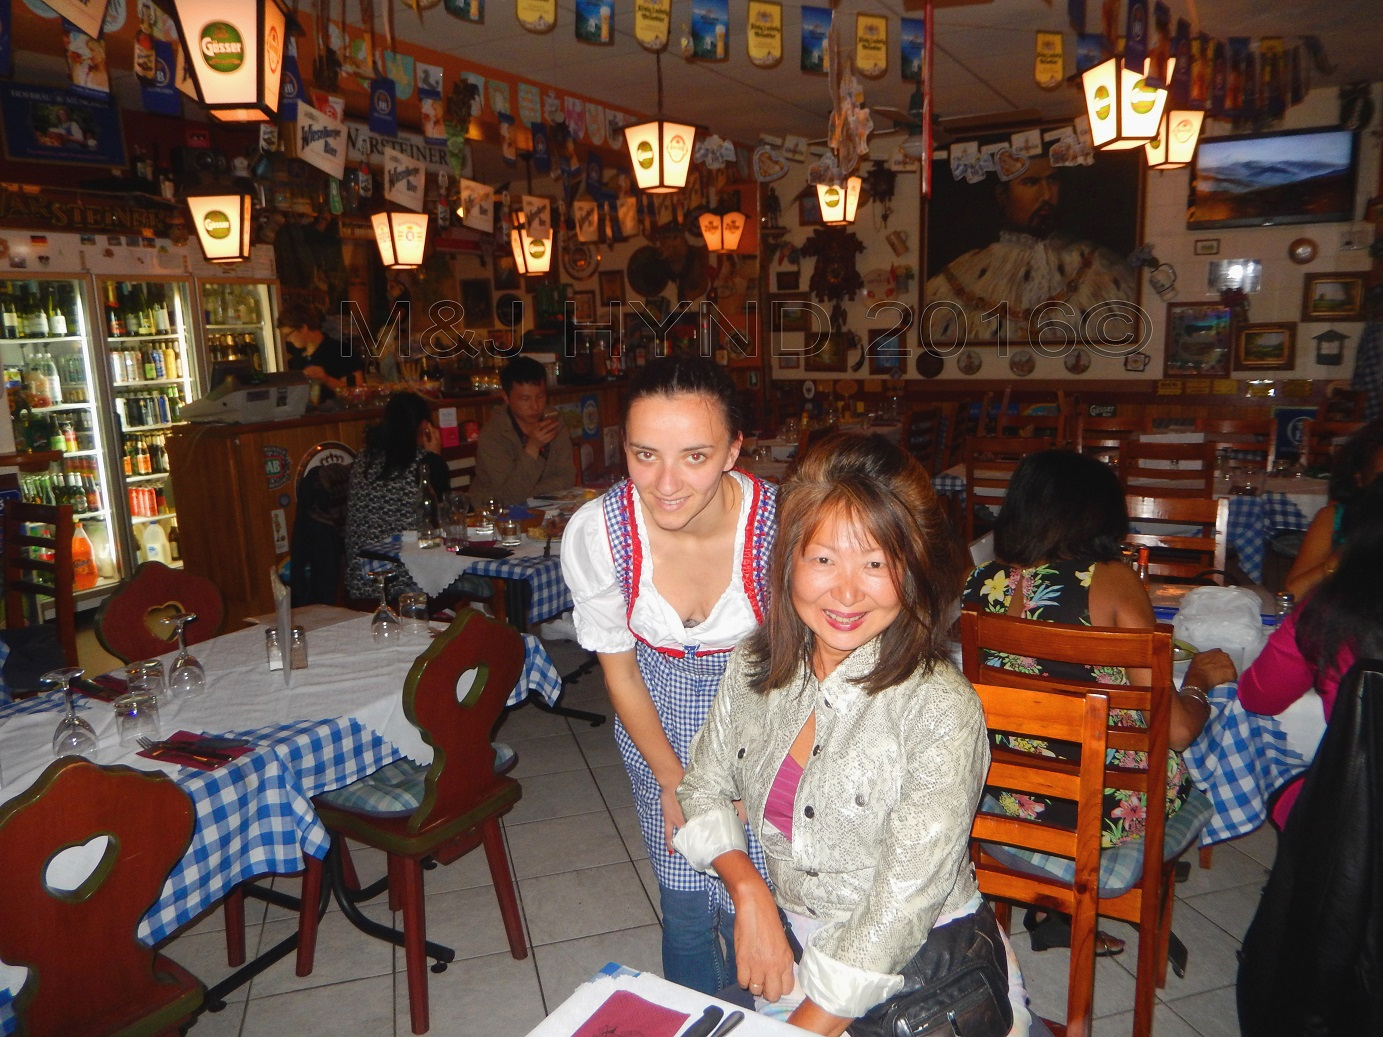 Der Metz restaurant  Hofbrauhaus decoration staff with dirndl, Auckland, NZ